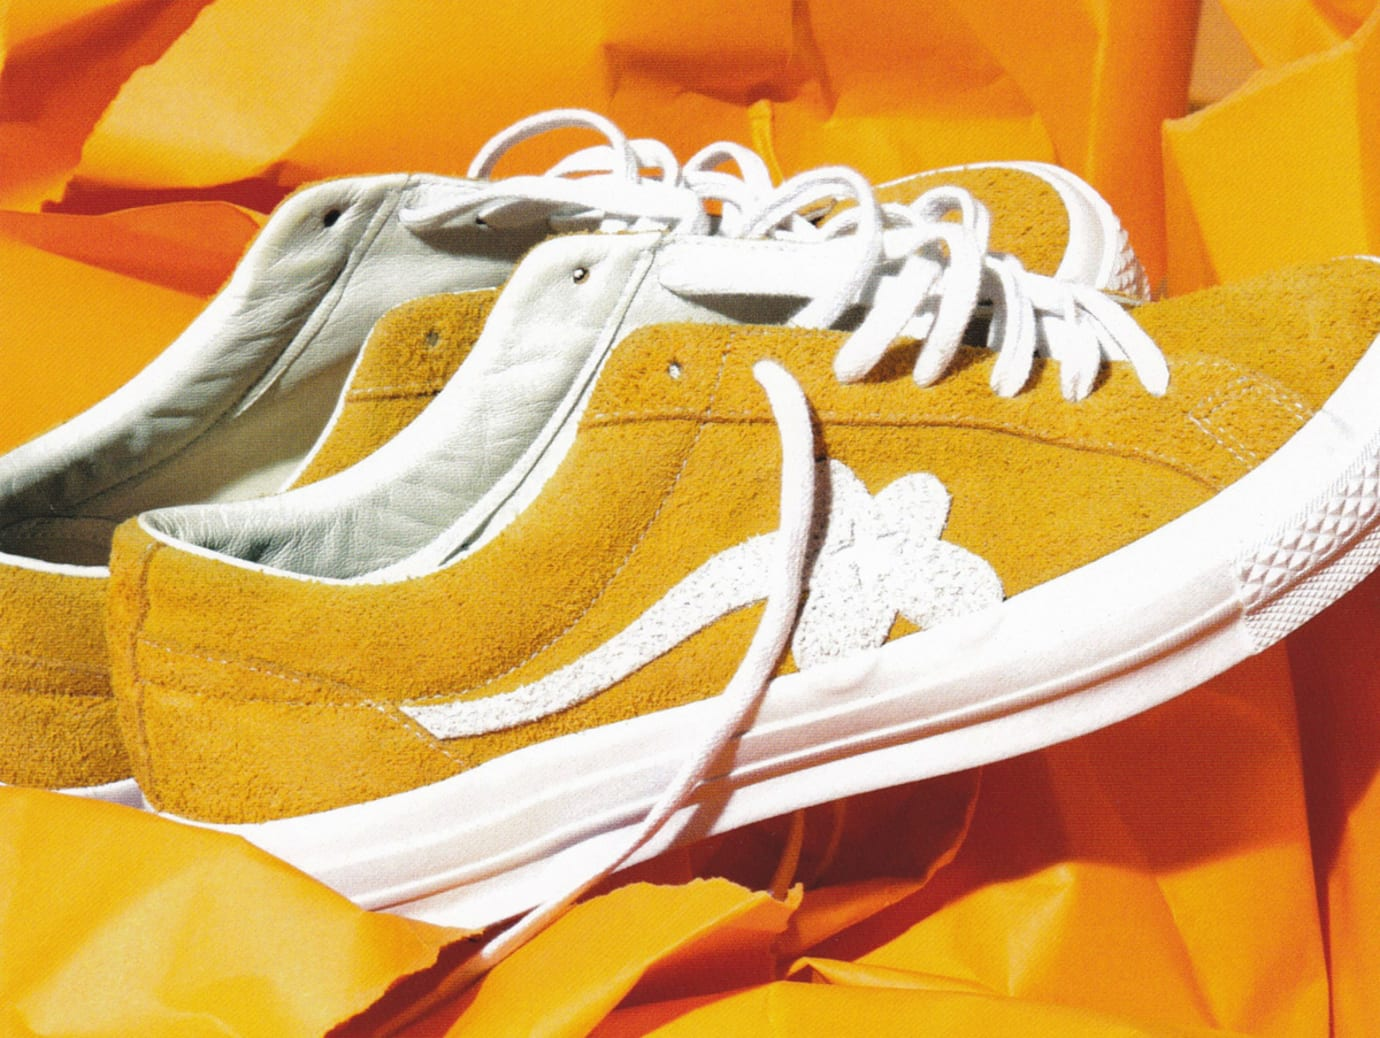 6459cd0883e7 Tyler the Creator Golf Le Fleur Converse One Star Sneakers